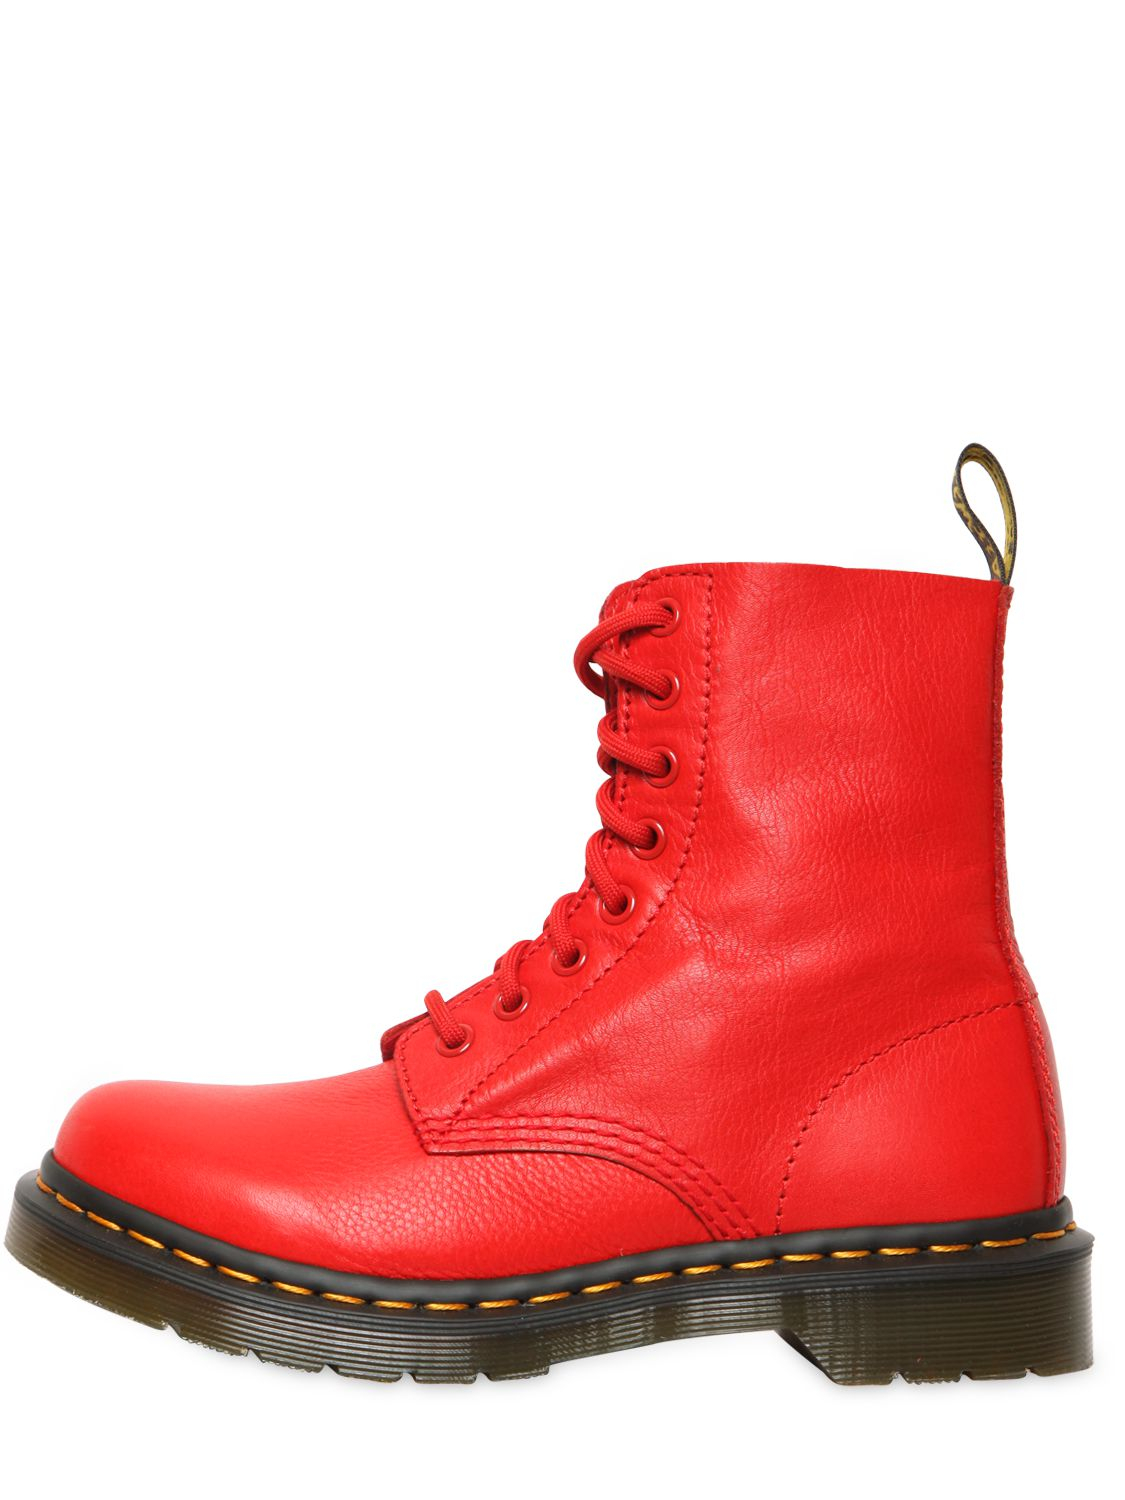 Lyst - Dr. Martens 30mm Core Pascal Soft Leather Boots in Red 79169d7c5